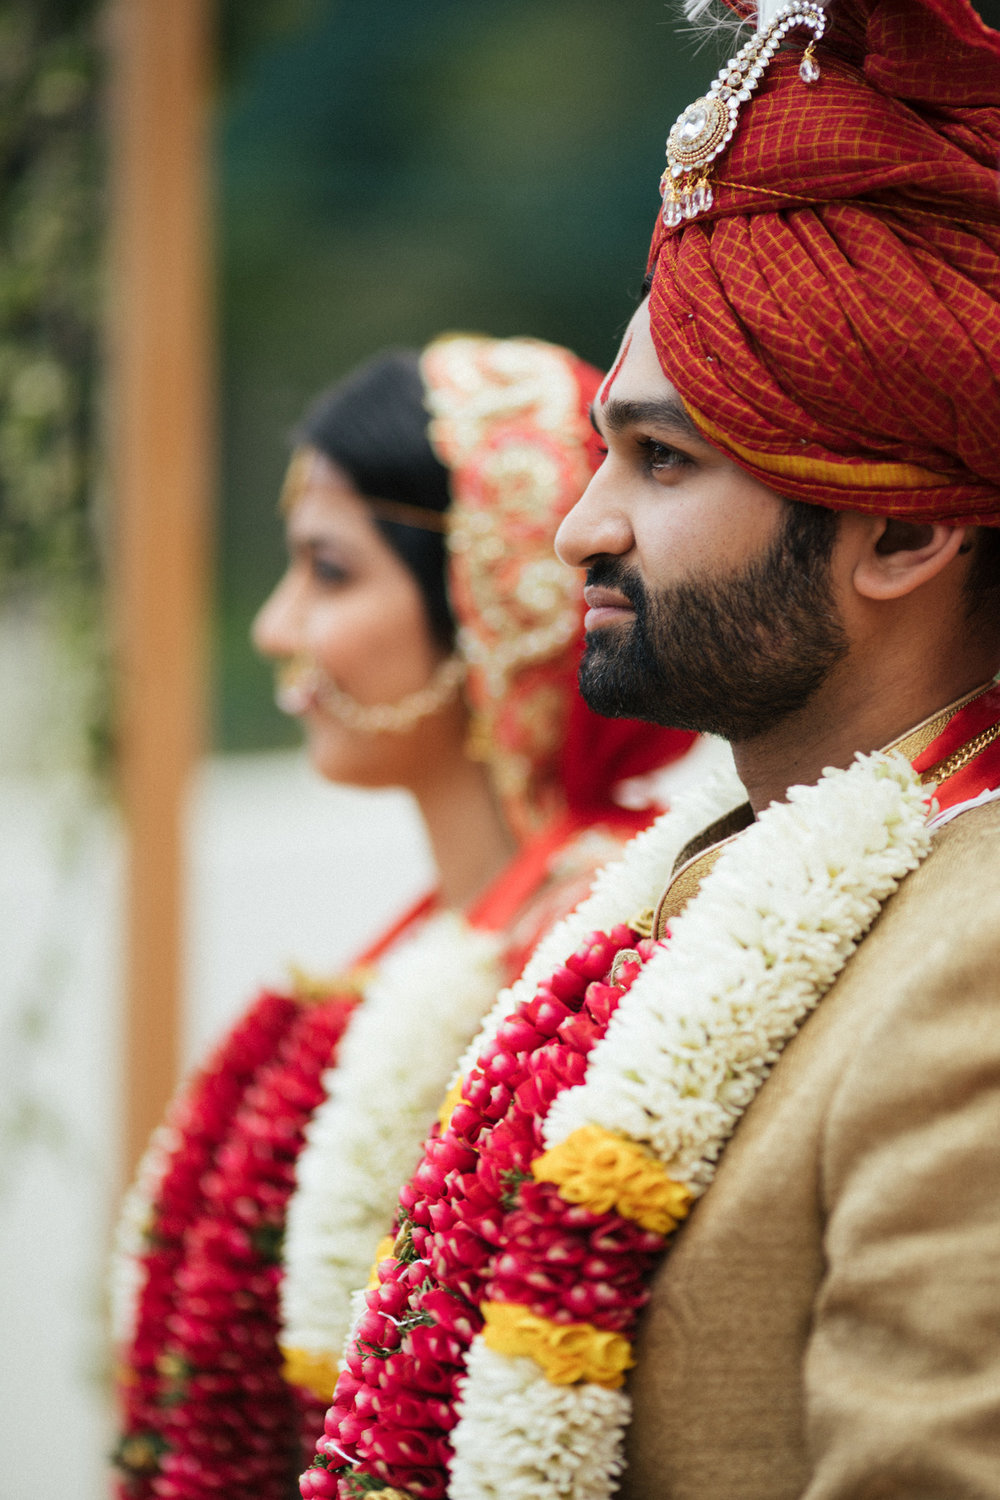 anu_maneesh_alec_vanderboom_Indian_wedding_photography-0106.jpg